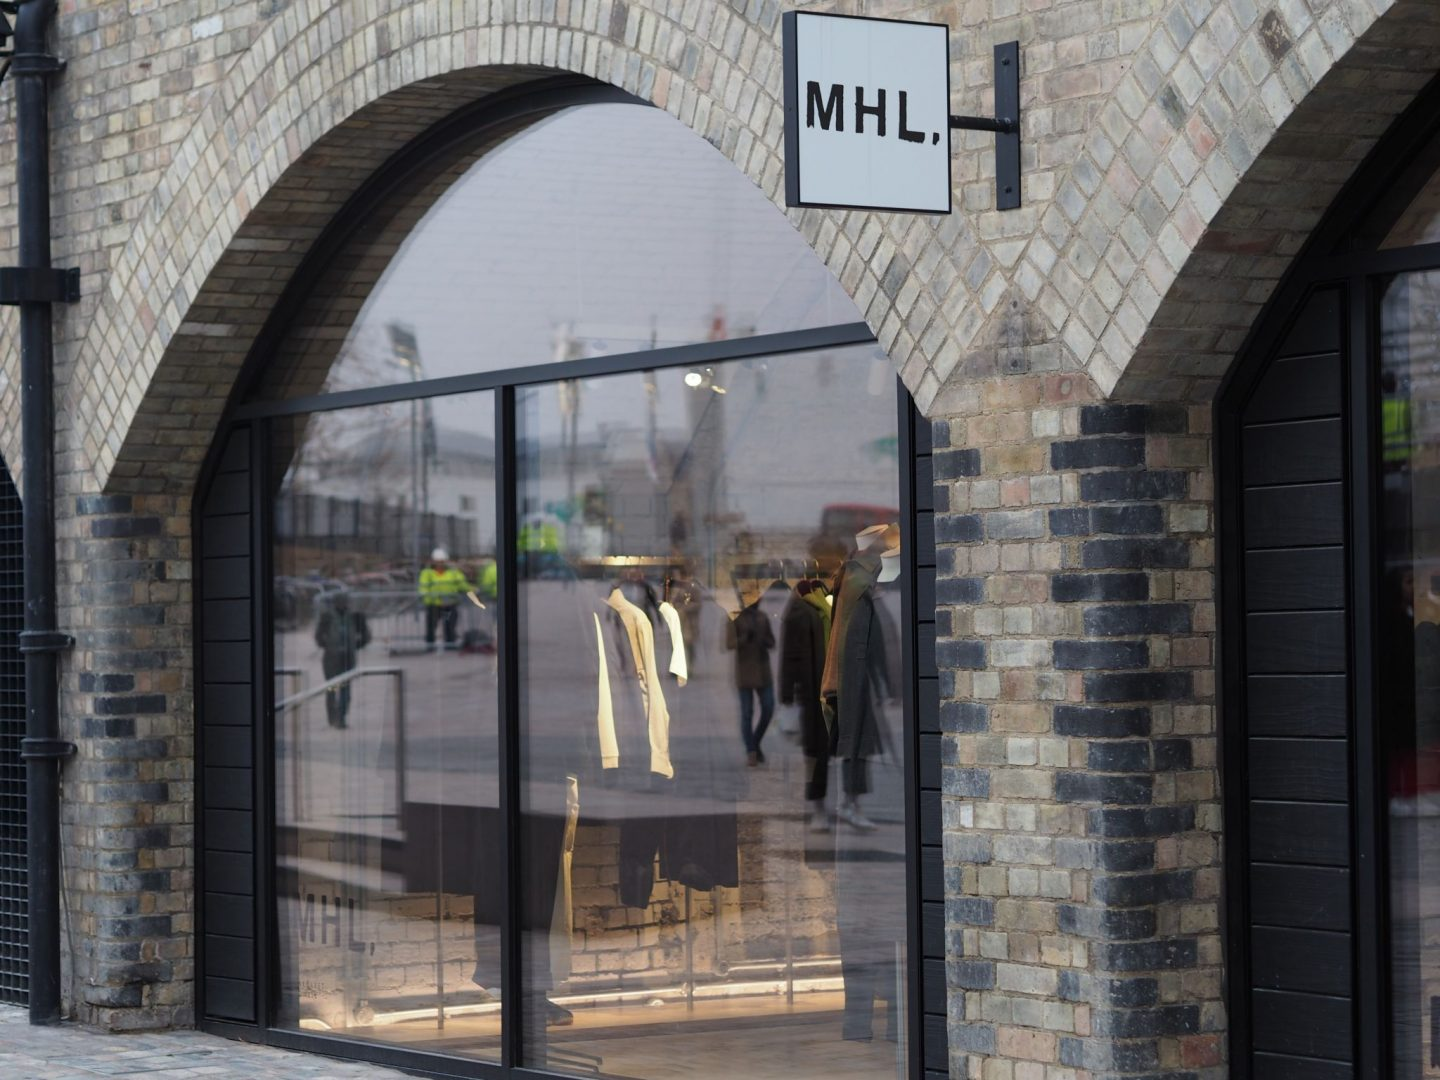 Coal Drops Yard, MHL, Brick arches, Mary Middleton for Hello Peagreen